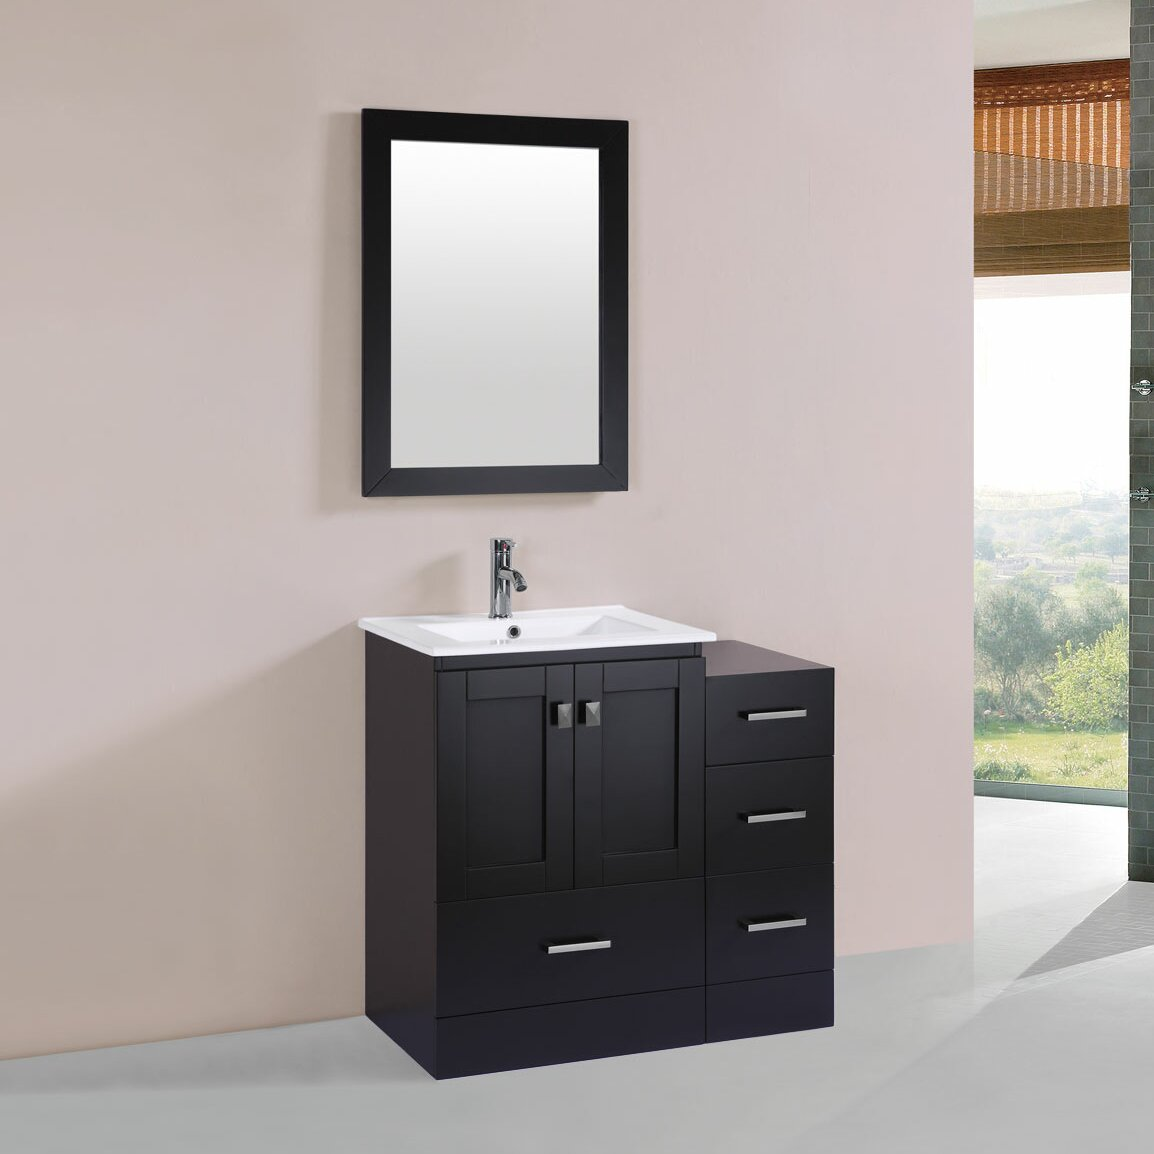 Pacificcollection Redondo 36 Single Modern Bathroom Side Cabinet Vanity Set With Mirror